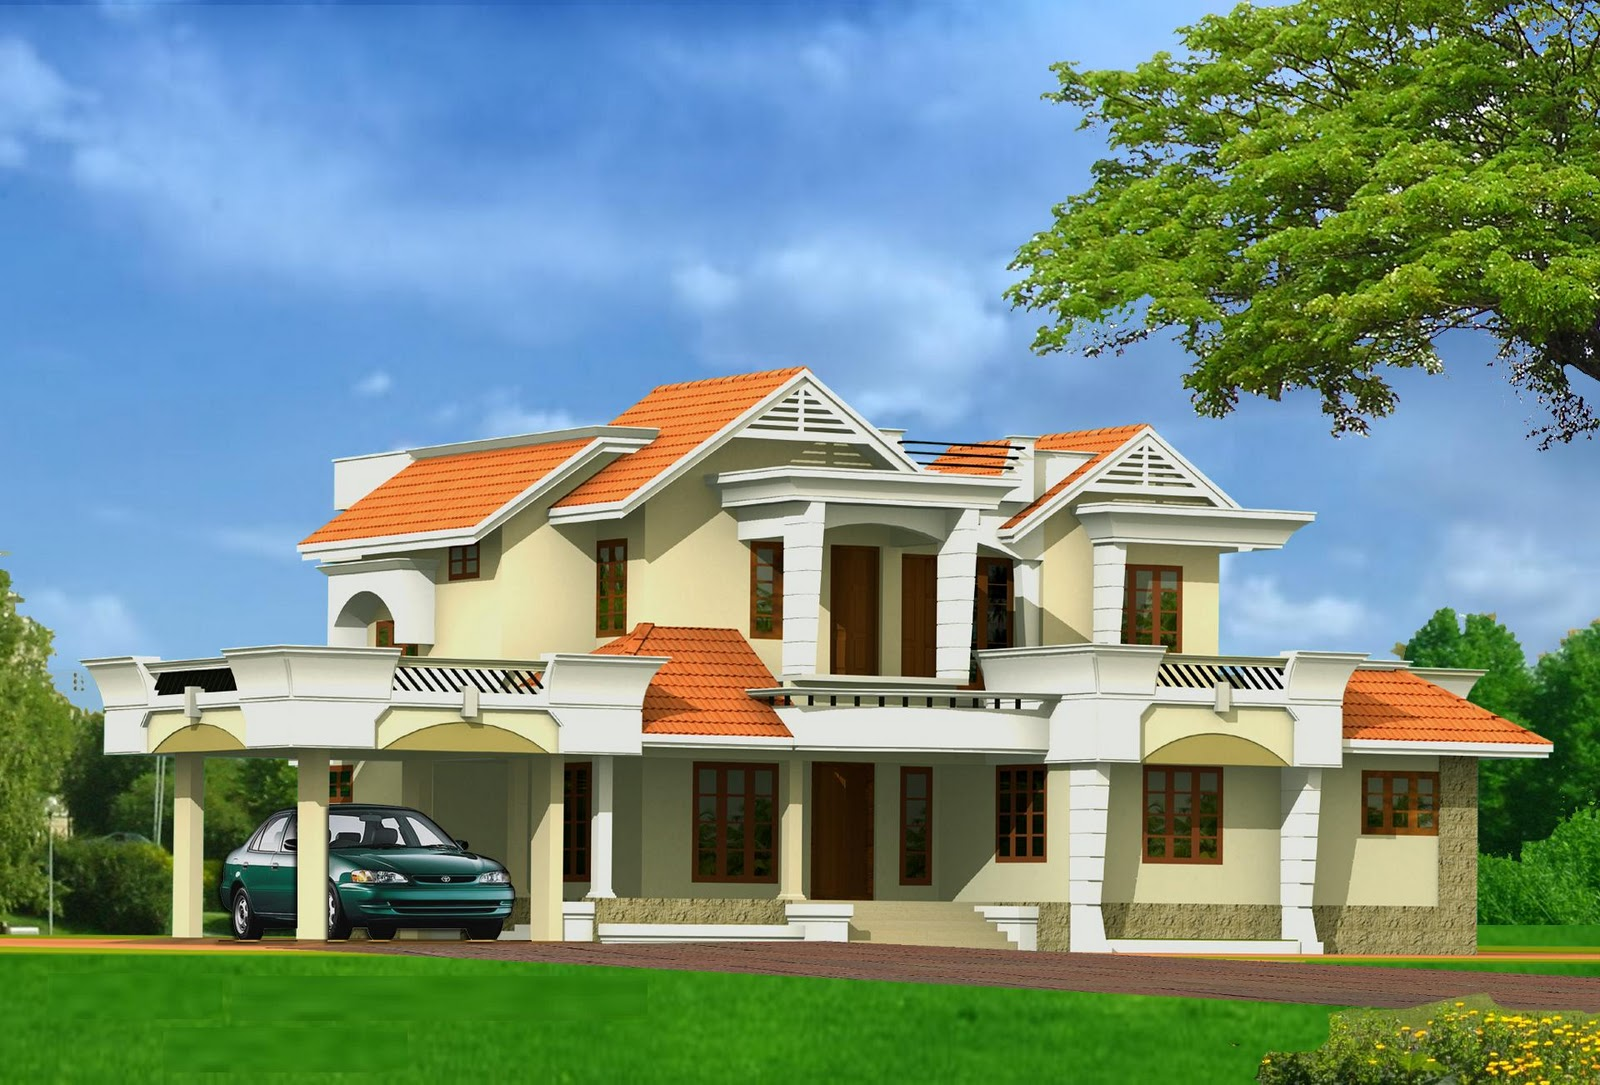 Residential building design the image for Residential home styles